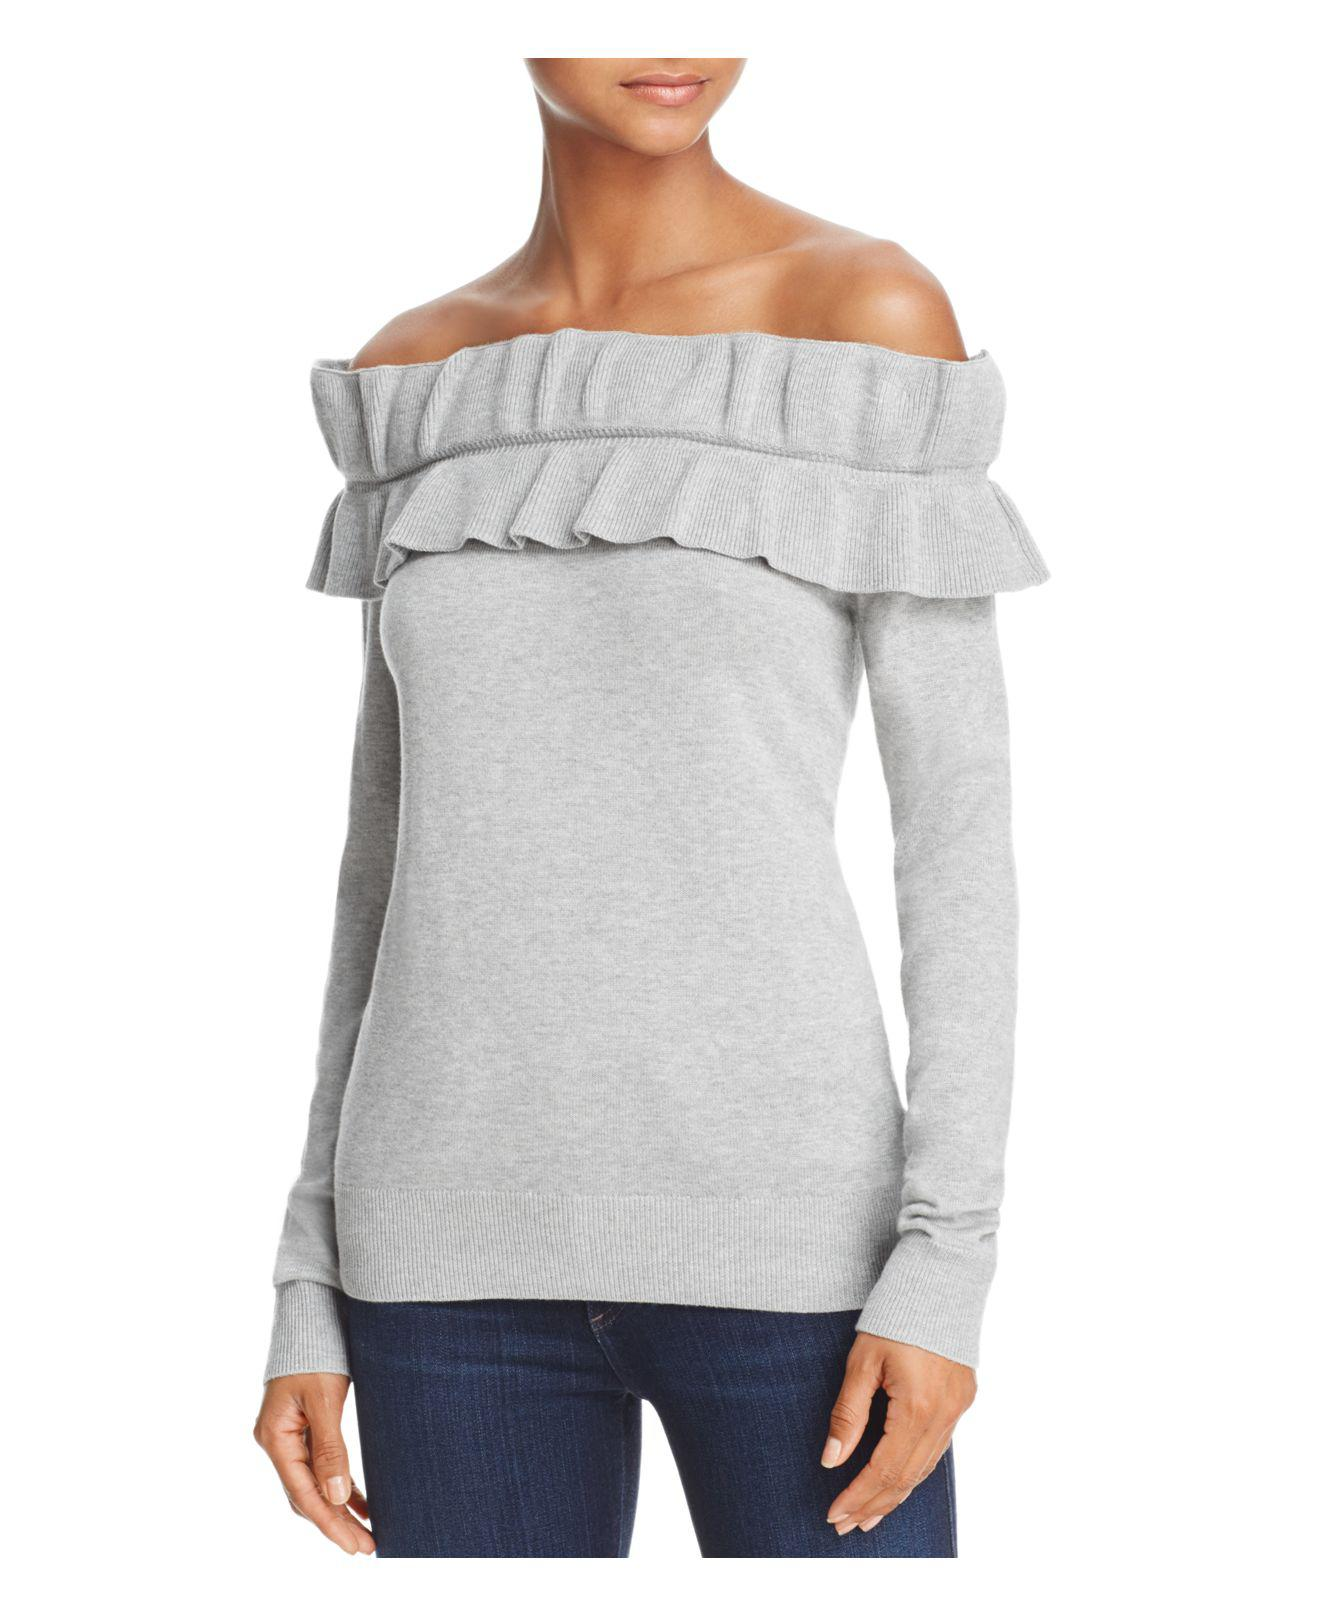 Endless rose Ruffled Off-the-shoulder Sweater in Gray | Lyst